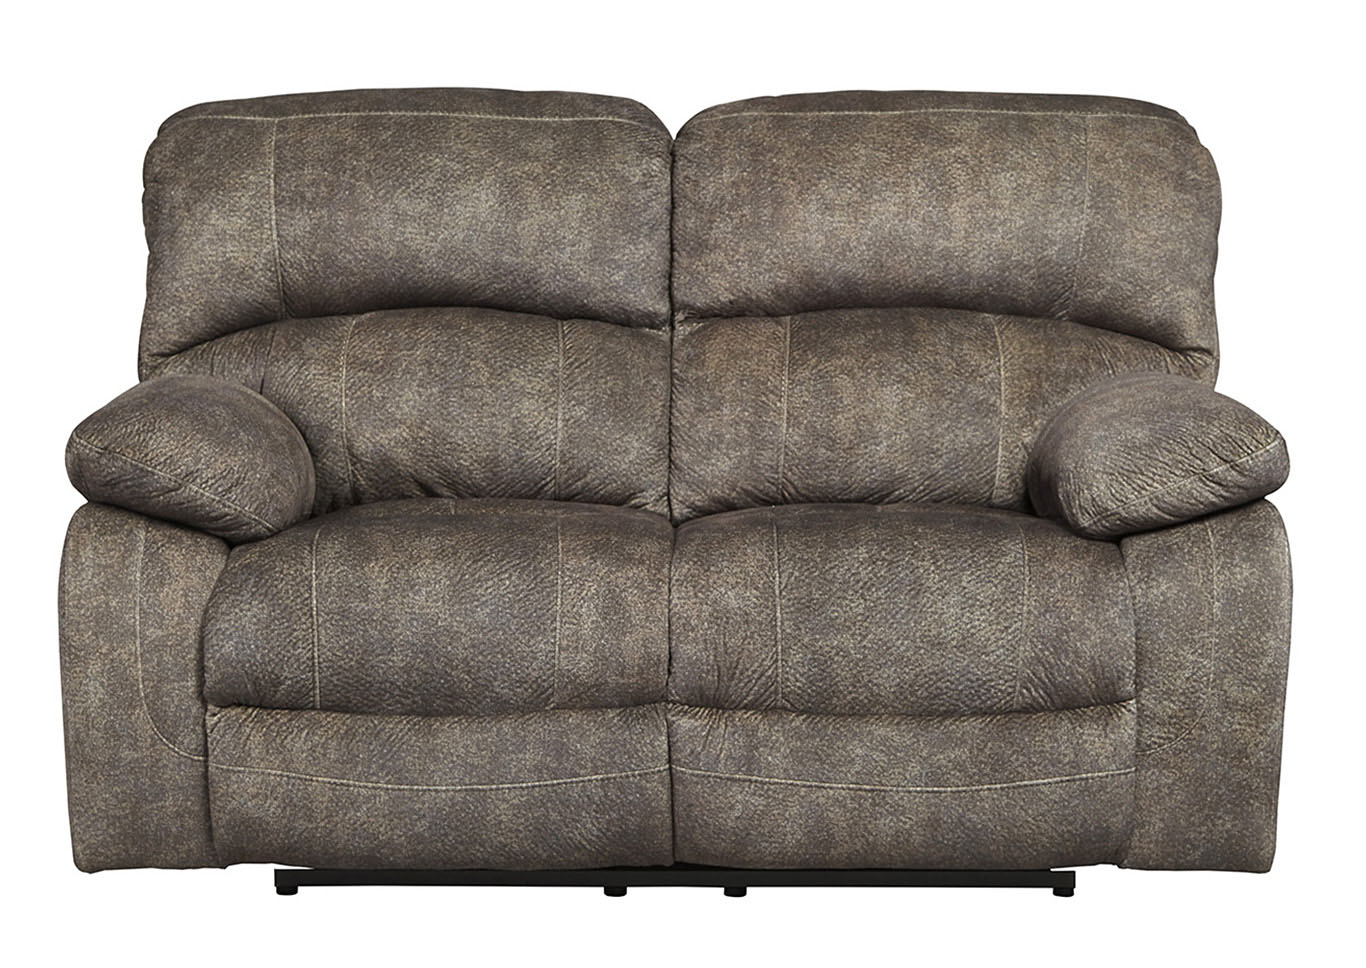 Cannelton Tri-Tone Gray Power Reclining Loveseat w/Adjustable Headrest,Signature Design By Ashley